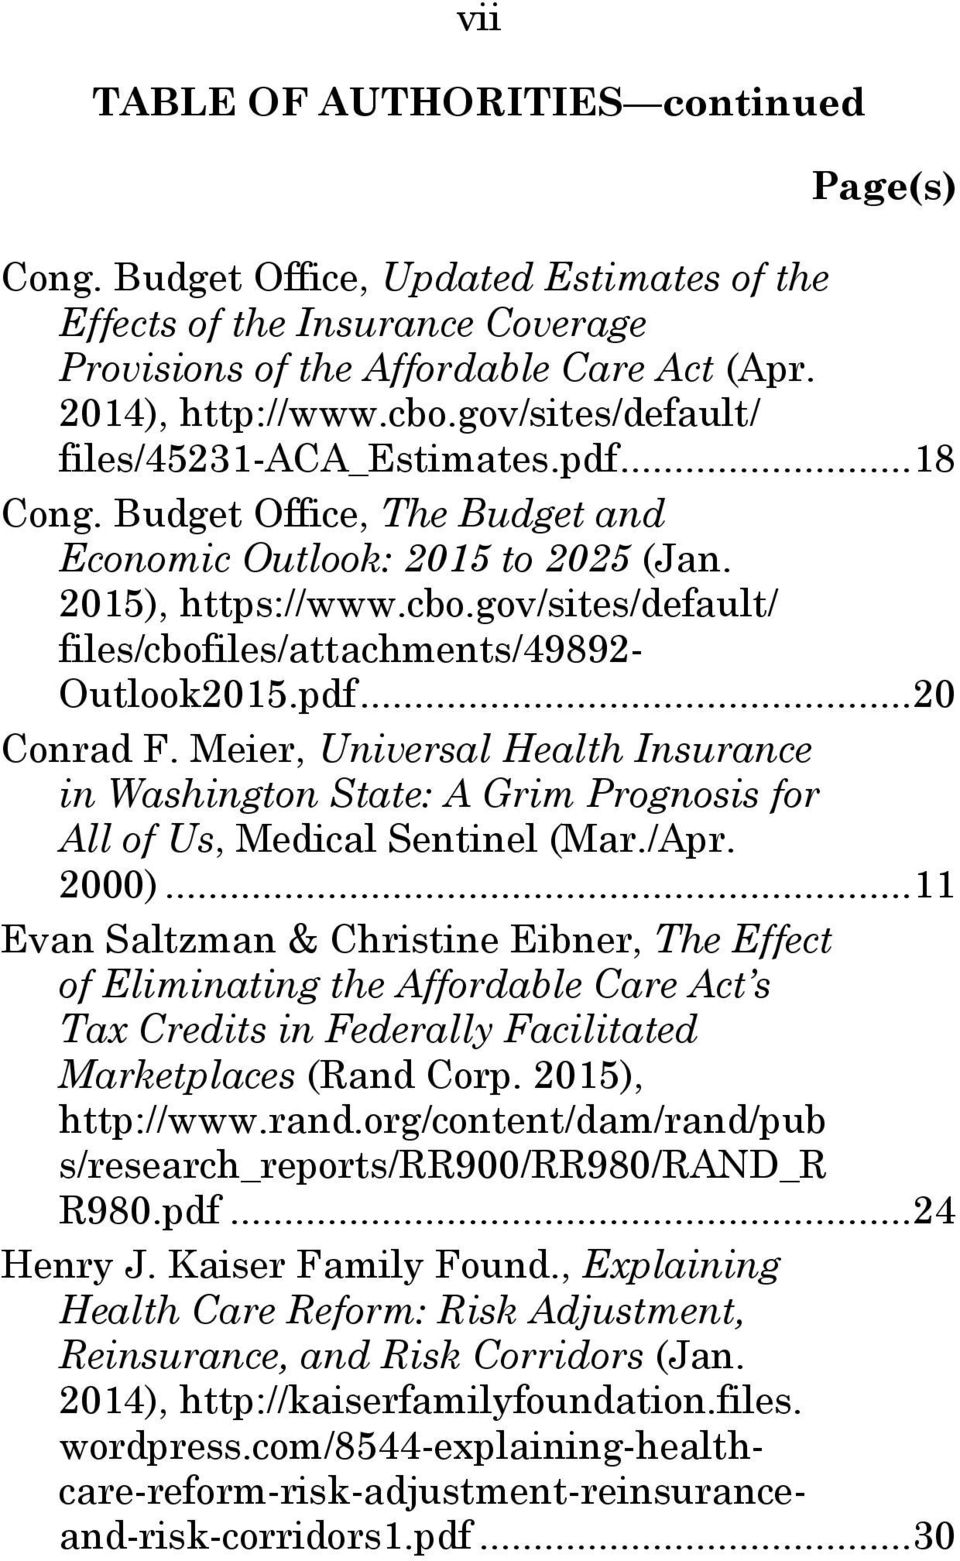 gov/sites/default/ files/cbofiles/attachments/49892- Outlook2015.pdf...20 Conrad F. Meier, Universal Health Insurance in Washington State: A Grim Prognosis for All of Us, Medical Sentinel (Mar./Apr.